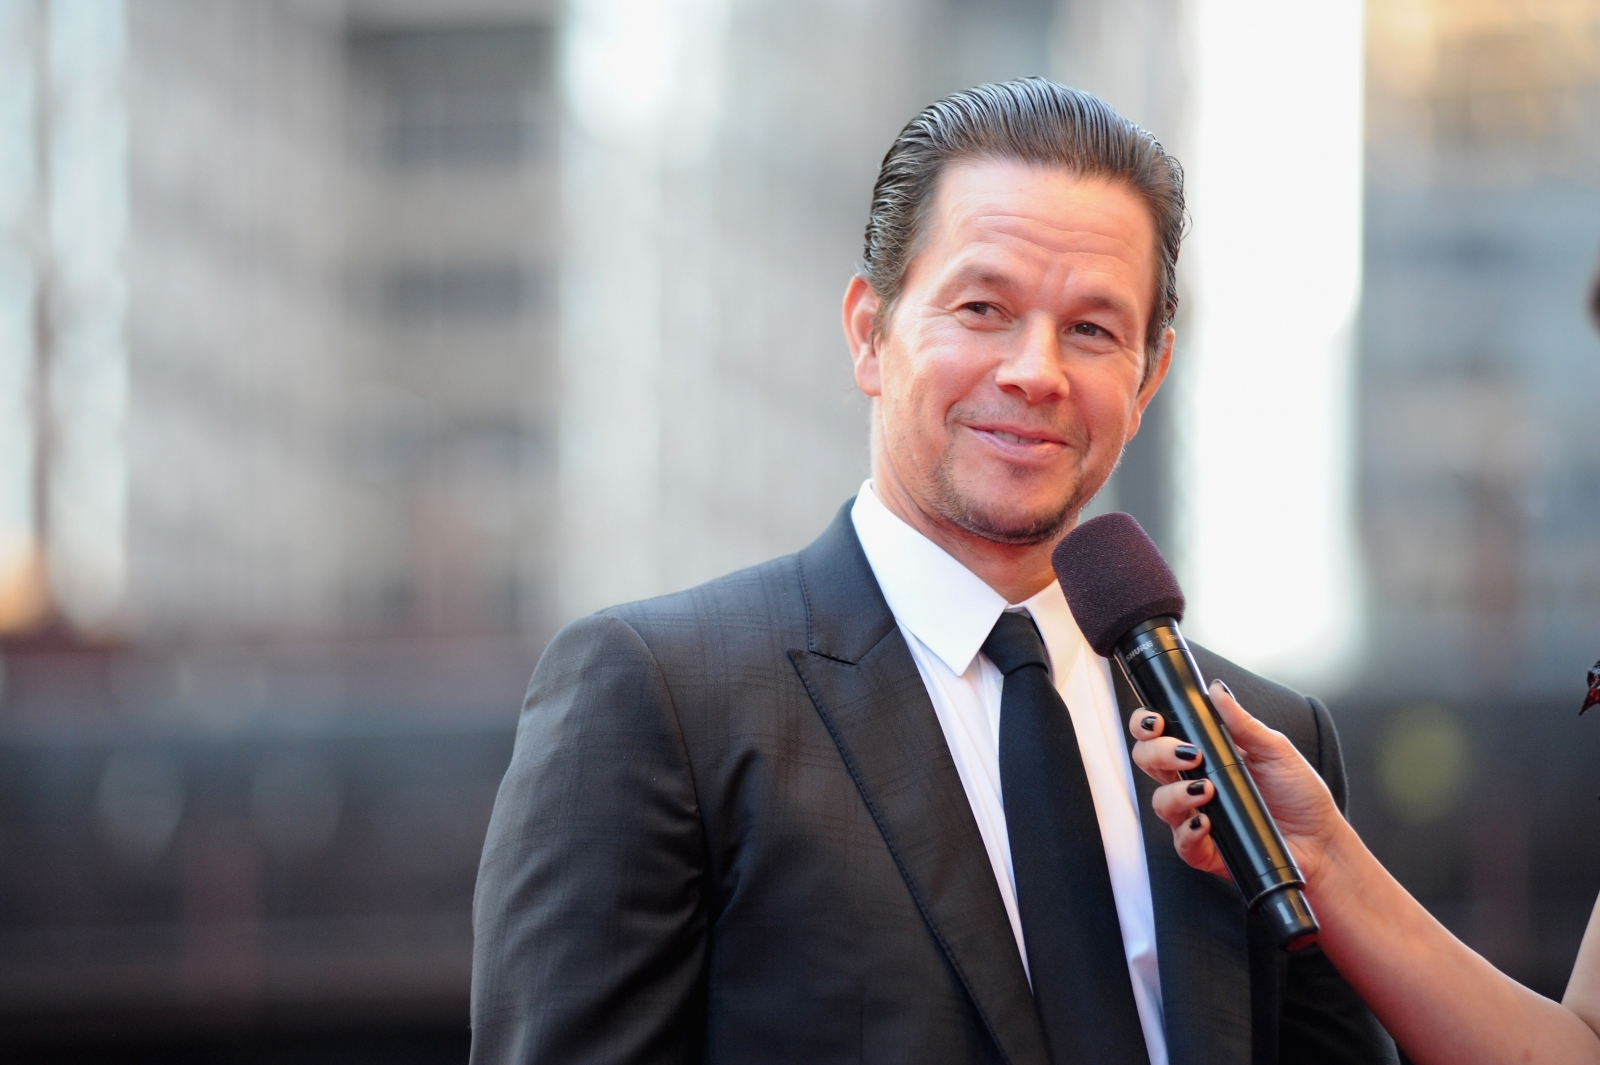 Mark Wahlberg dethrones Dwayne 'The Rock' Johnson as world's highest-paid actor